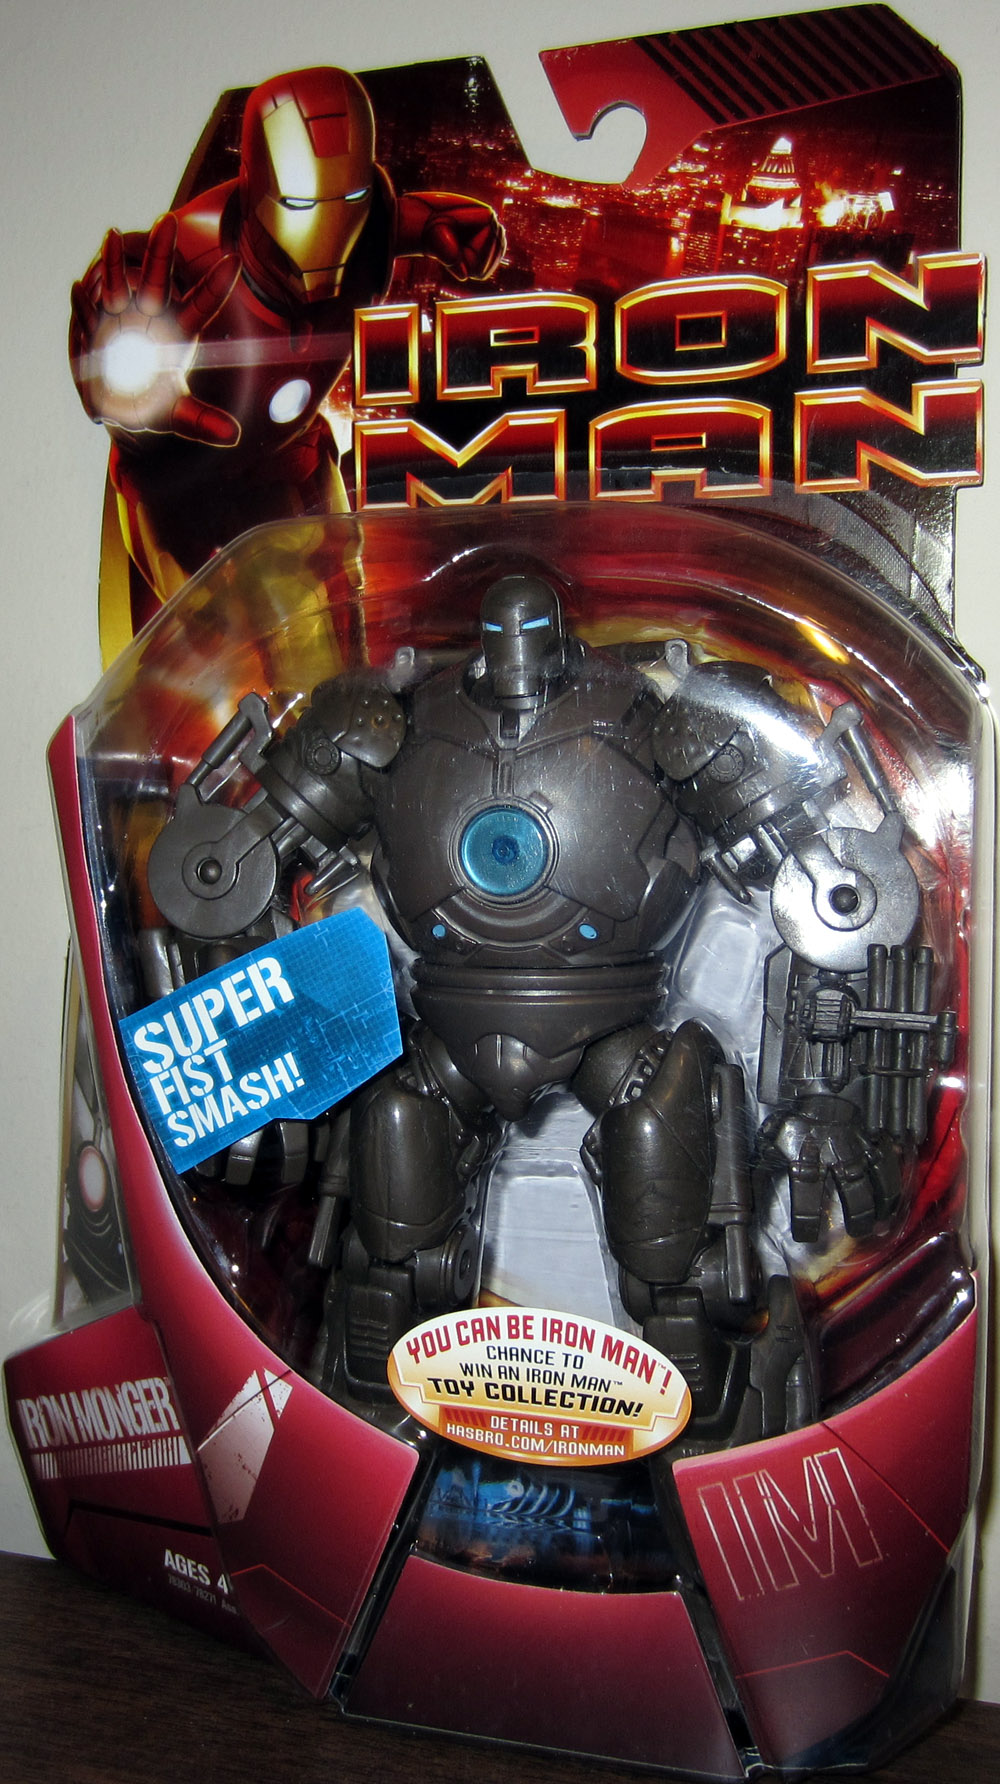 Iron Monger with super fist smash (movie, blue version)